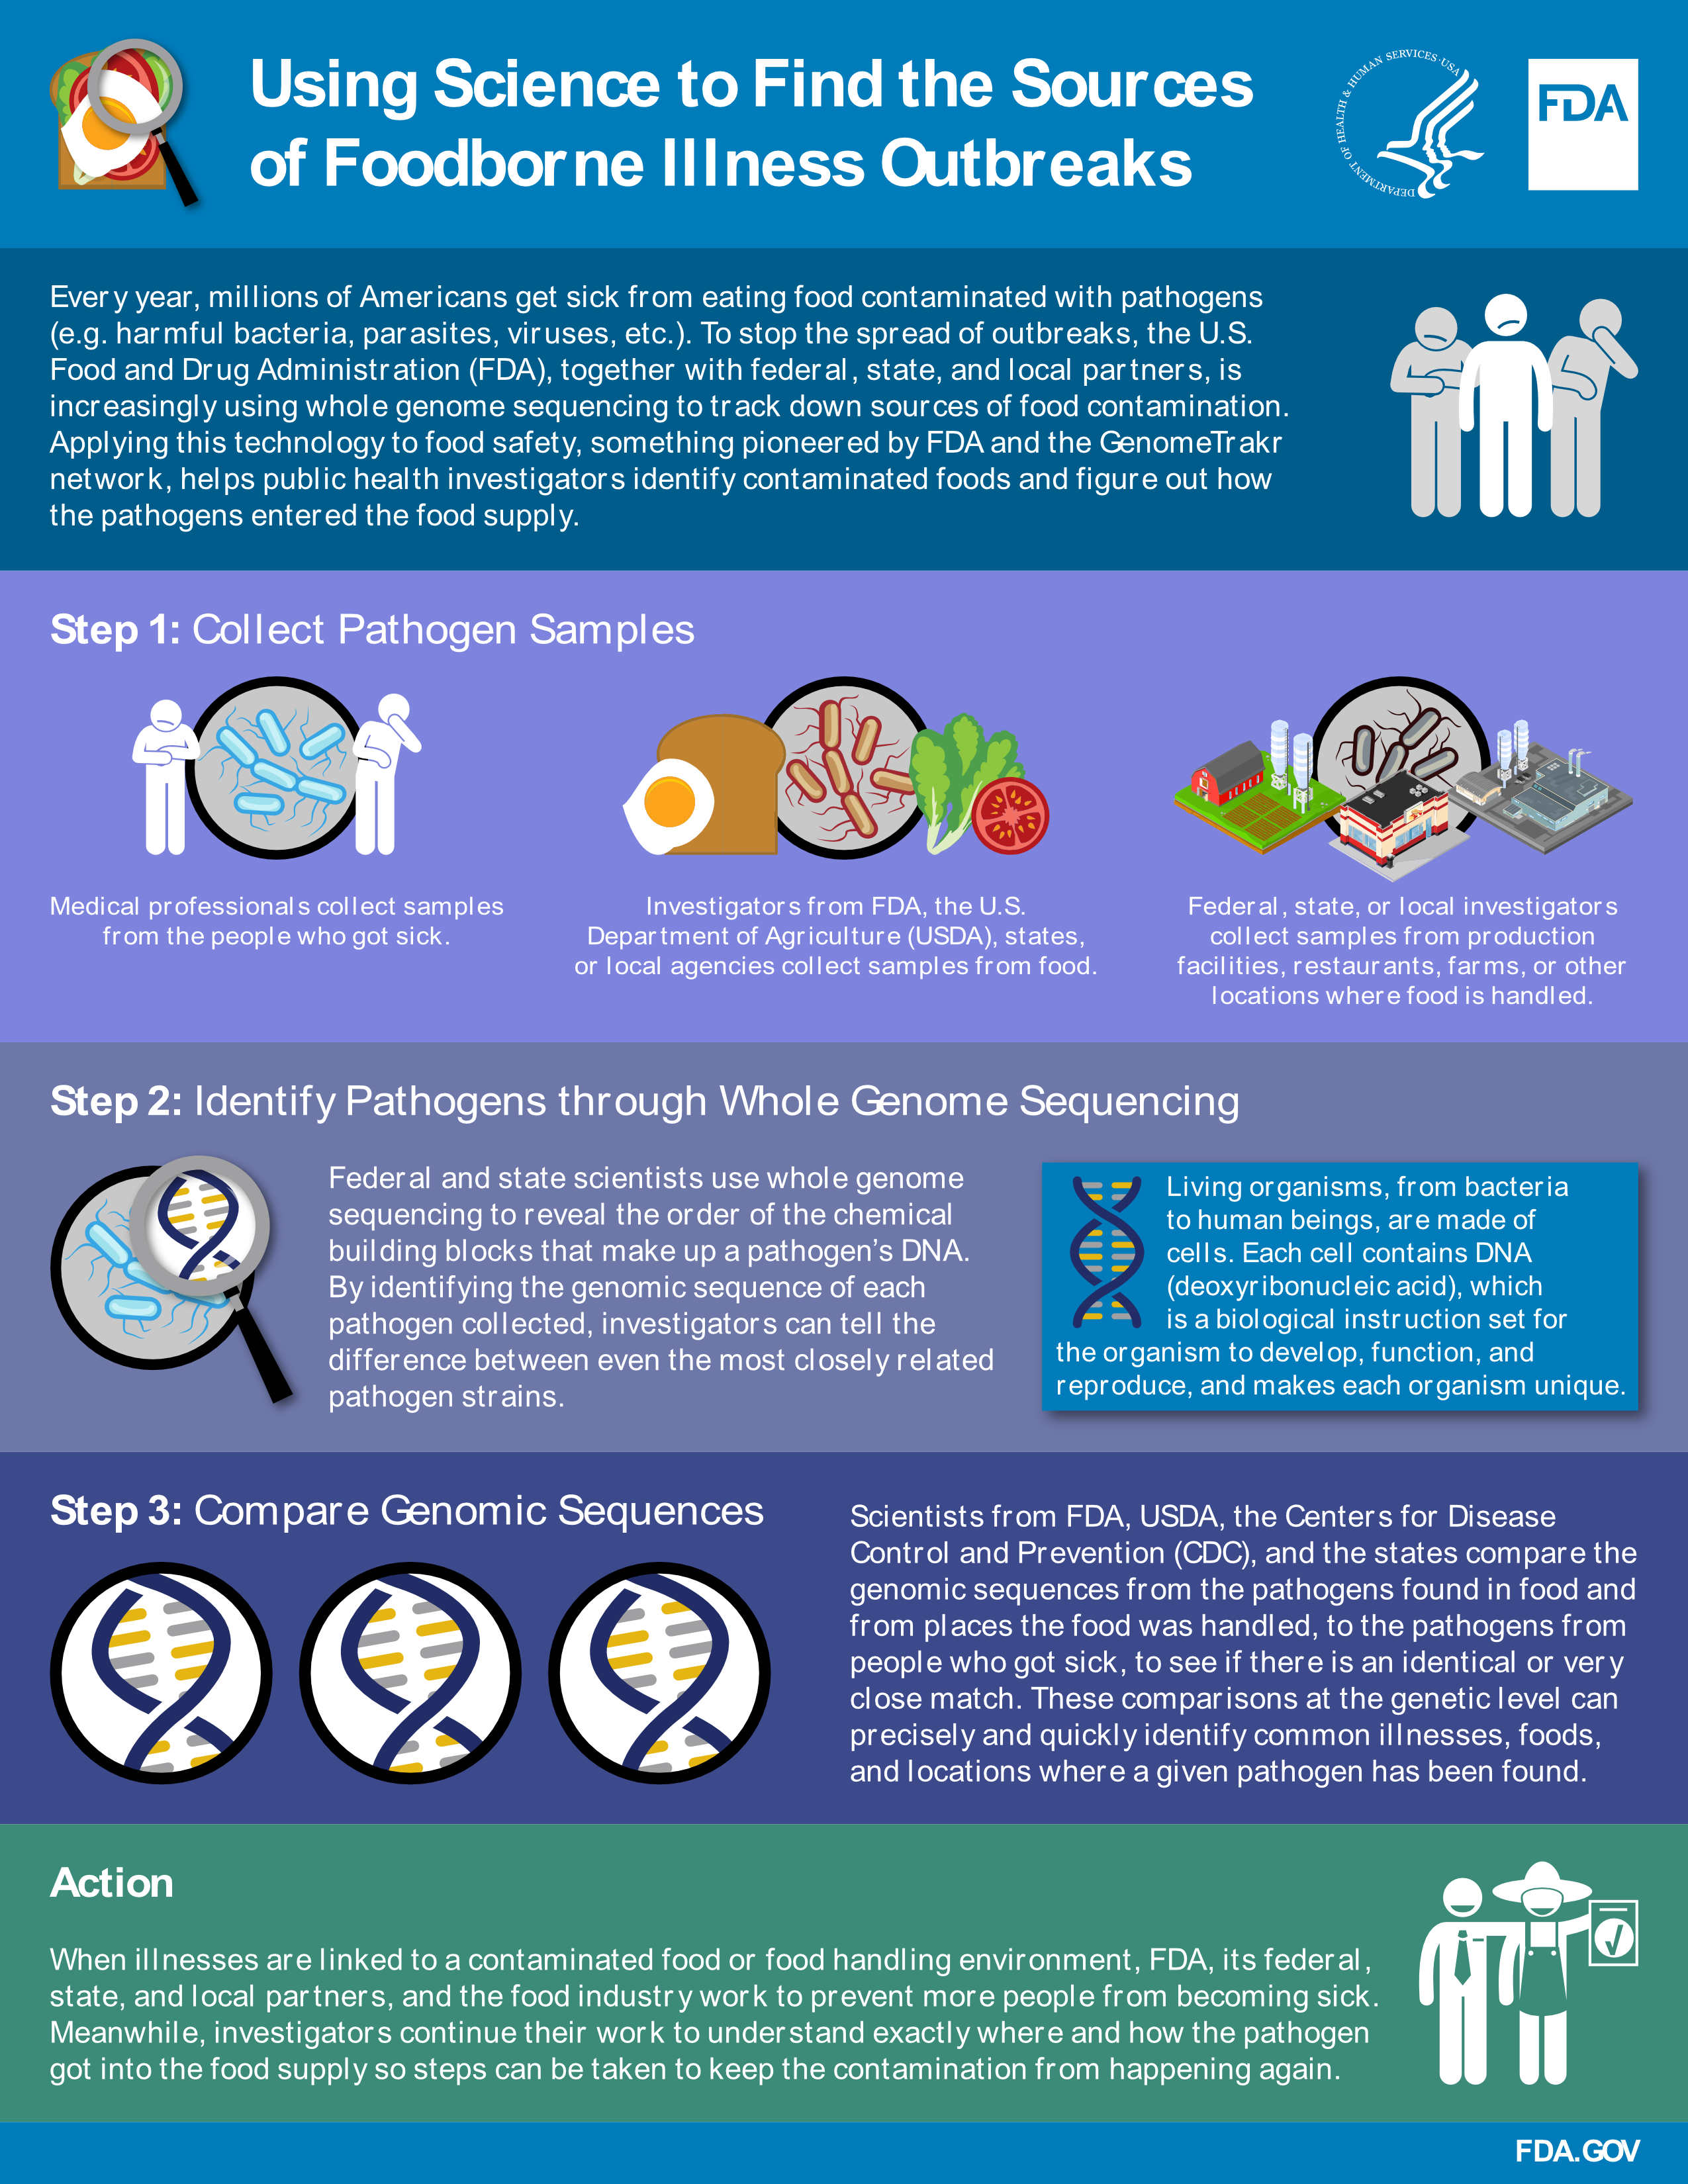 FDA genome sequencing infographic